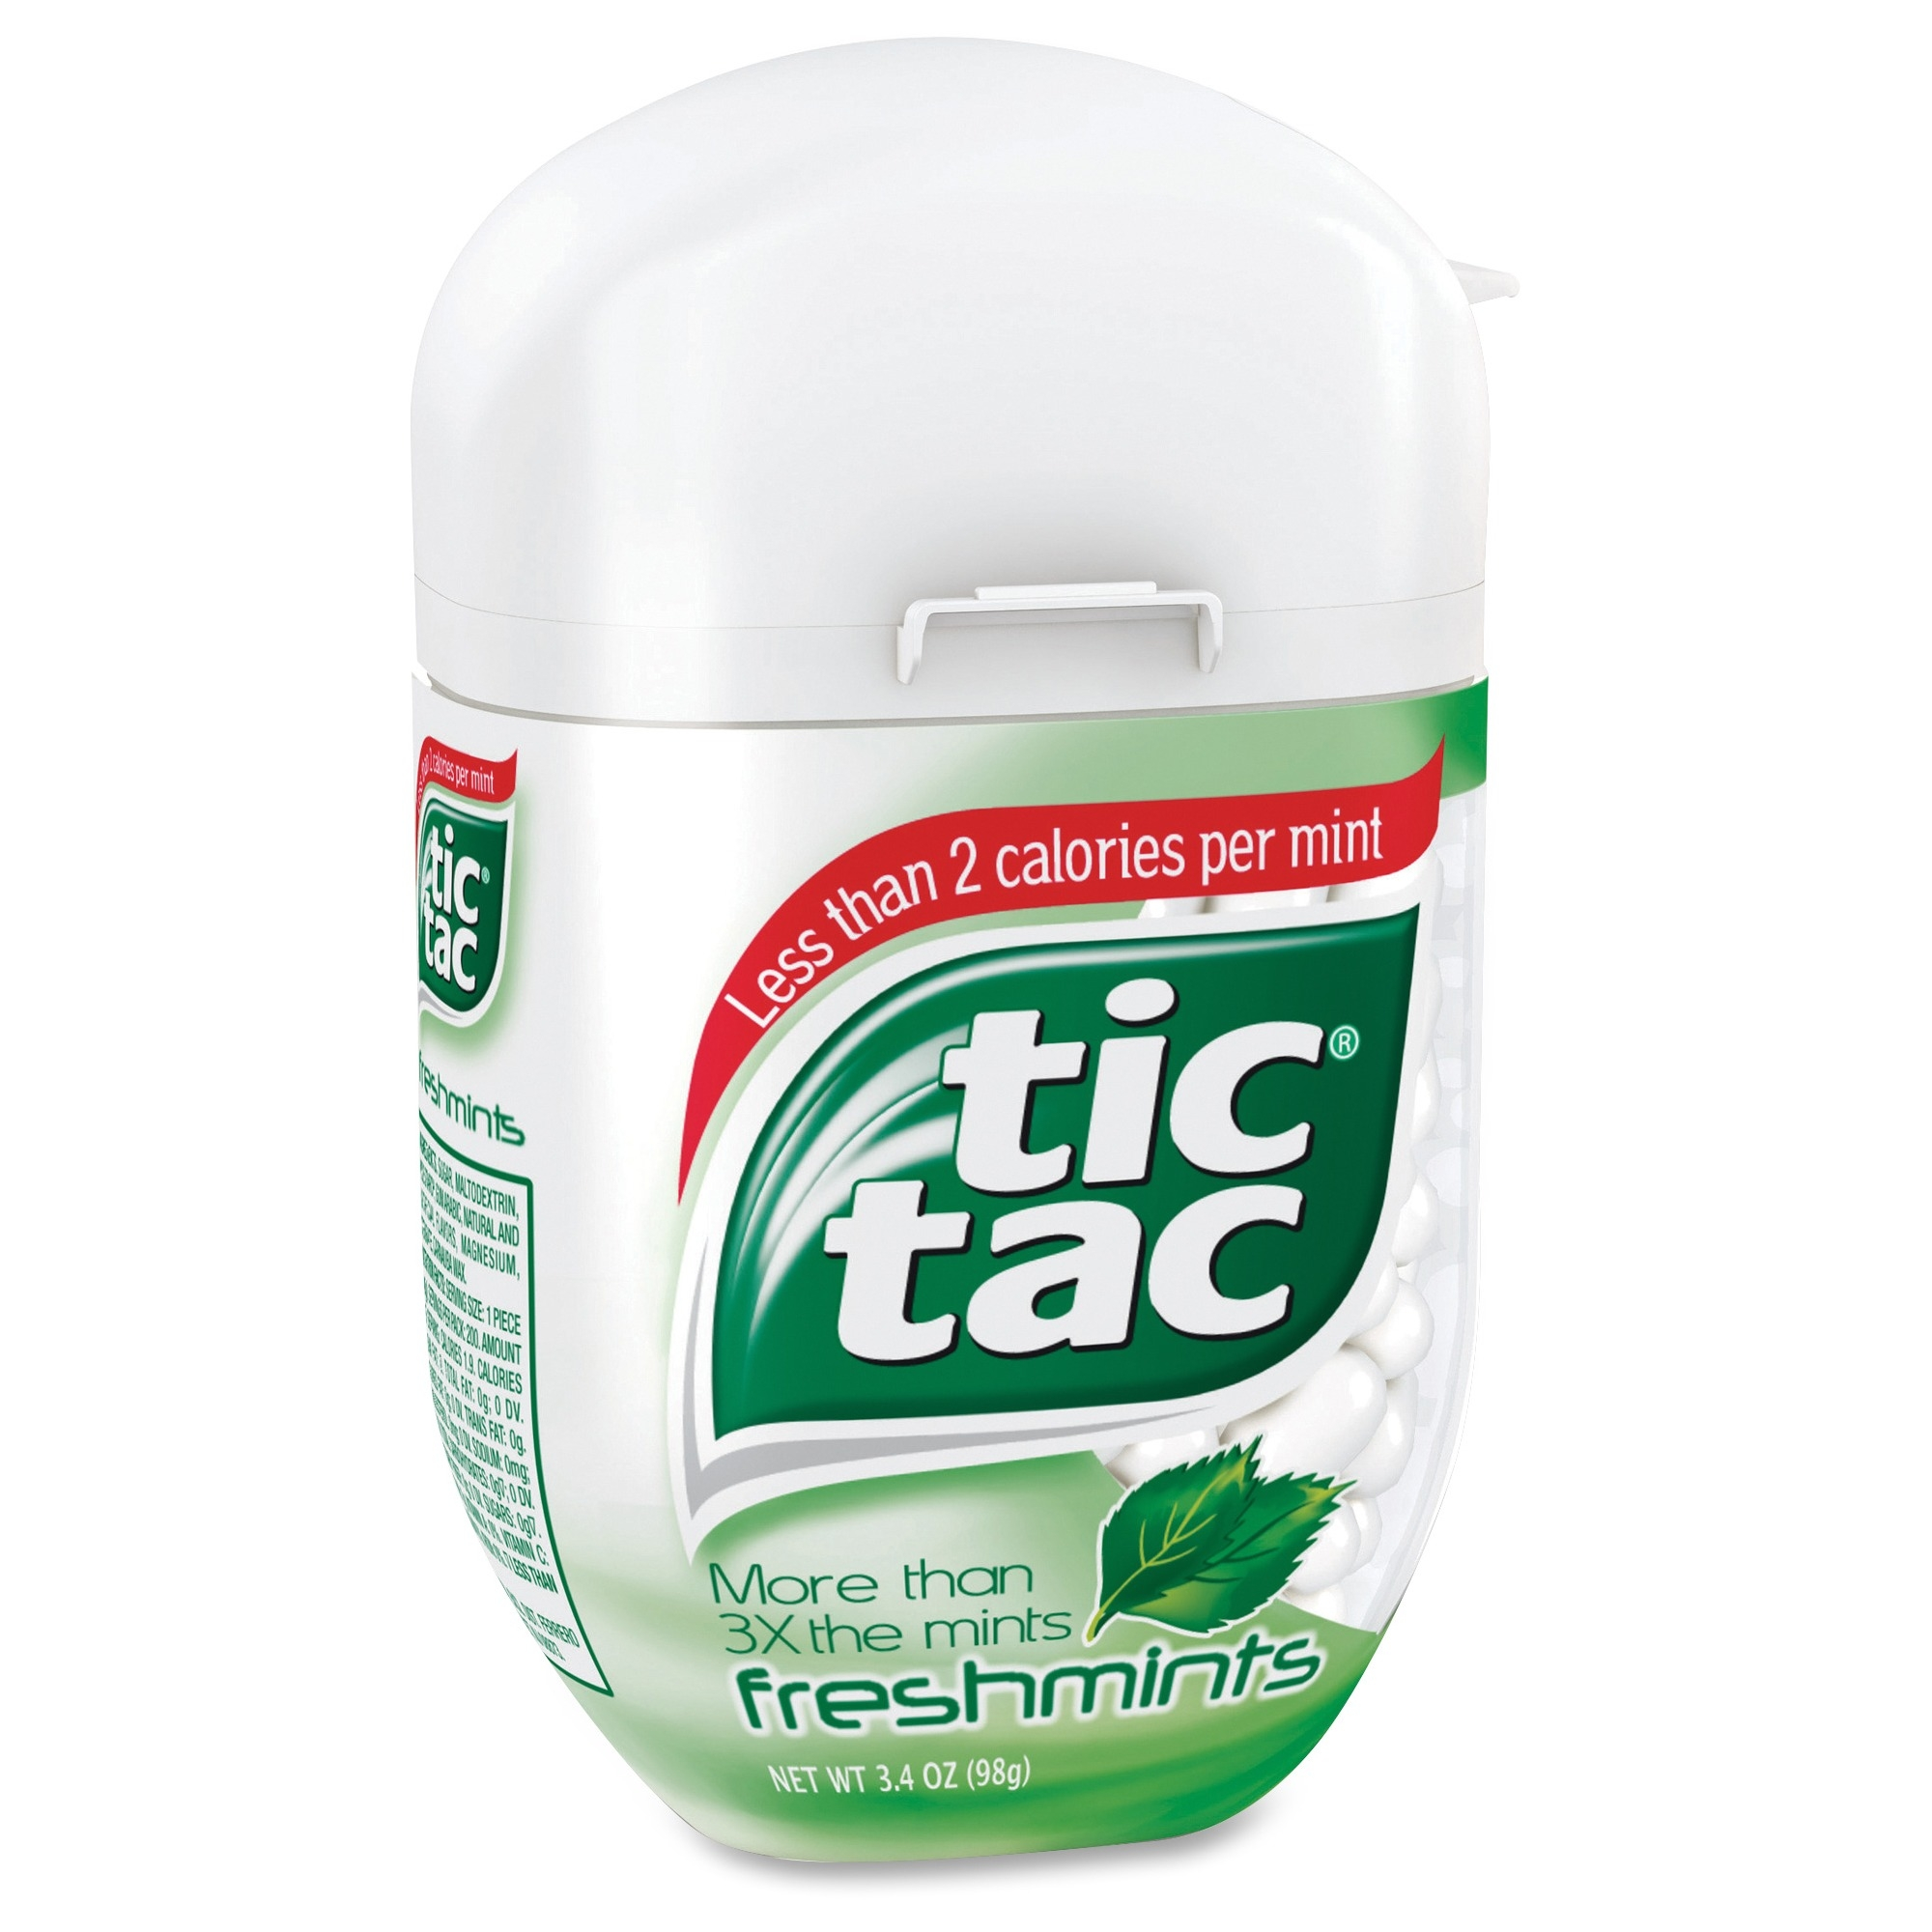 Tic Tac Breath Mints - Freshmint - Resealable Container - 3.40 Oz - 4 / Pack (sn00631)